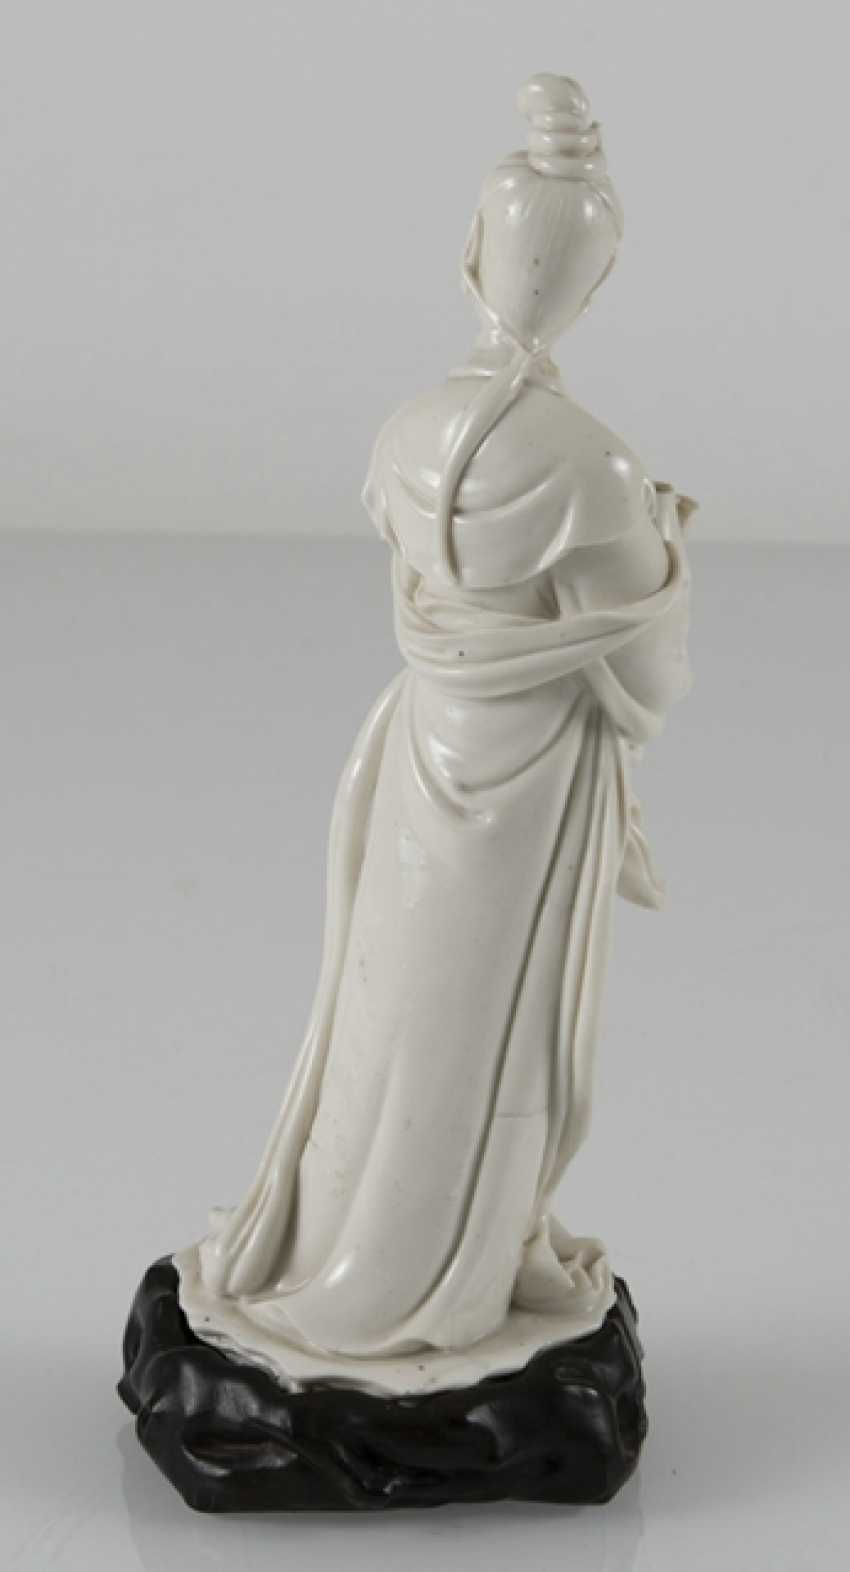 Dehua figure of Guanyin, a Vase in front of the chest holding - photo 4